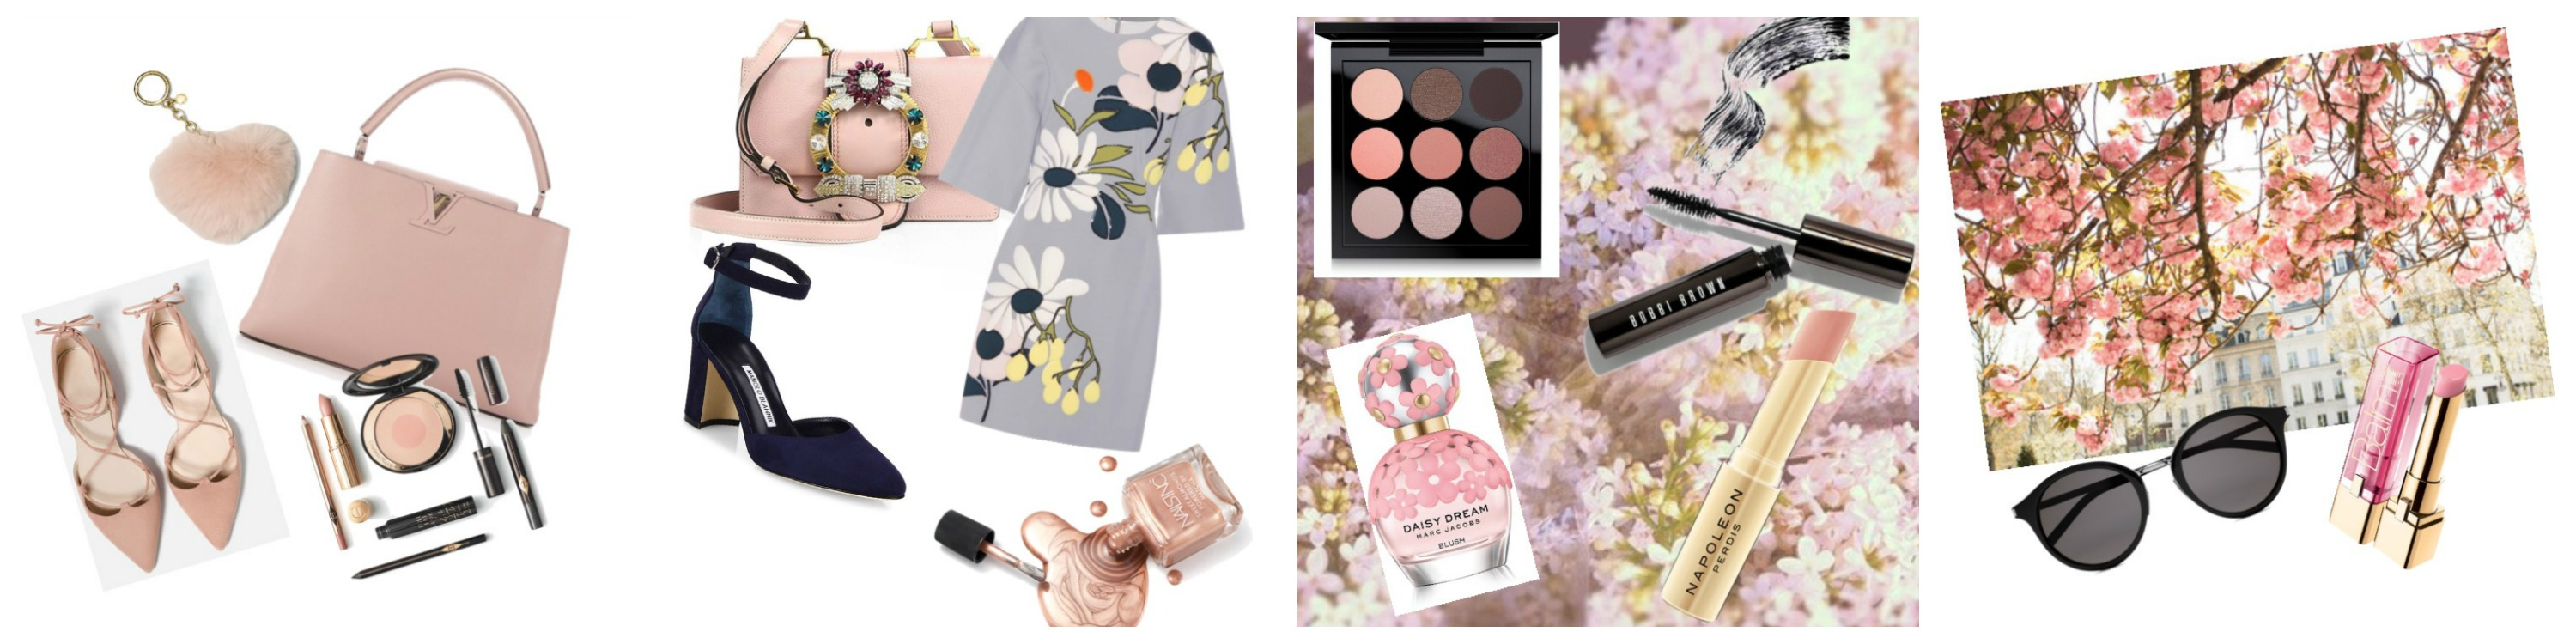 Spring Wish List - Wish List March: Spring in the Air!